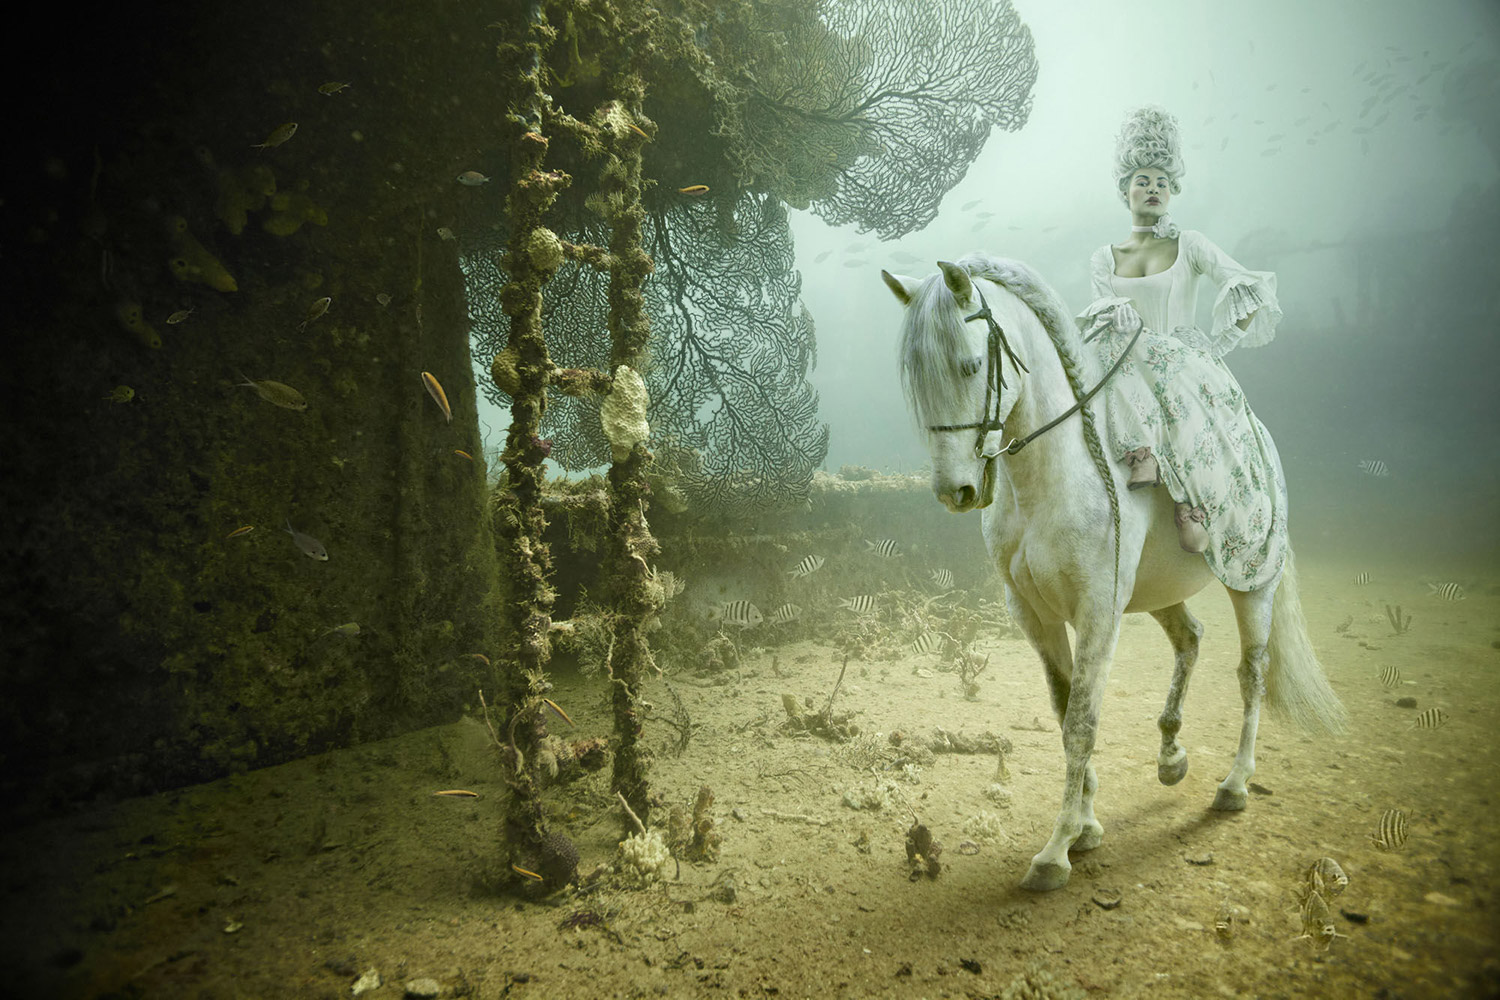 Andreas Franke - The Sinking World, woman on horse